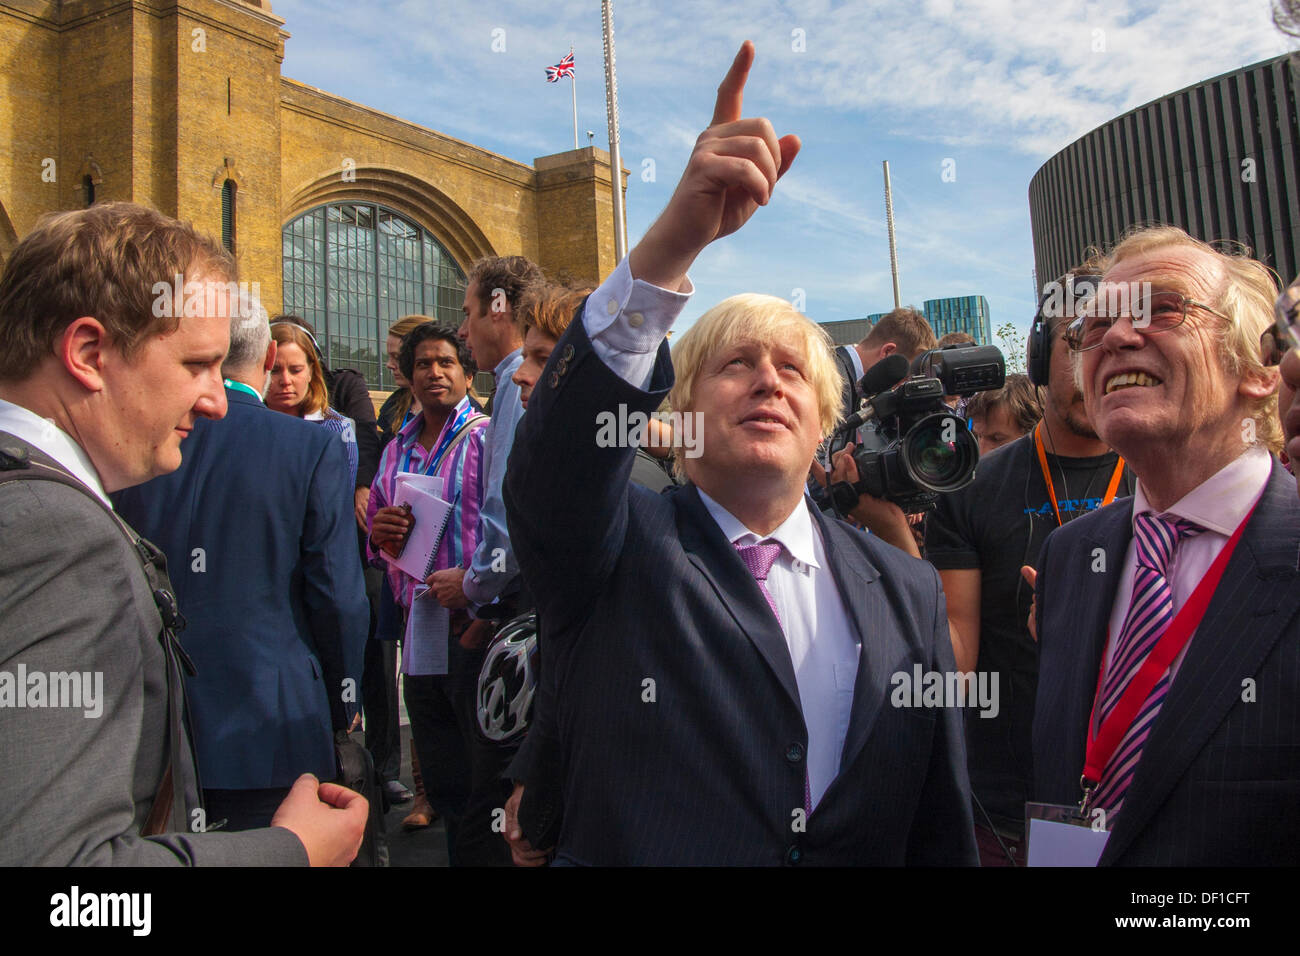 London, UK. 26th Sep, 2013. London Mayor Boris Johnson at the official opening of Kings Cross Square following the station's £550m refurbishment. Credit:  Paul Davey/Alamy Live News - Stock Image